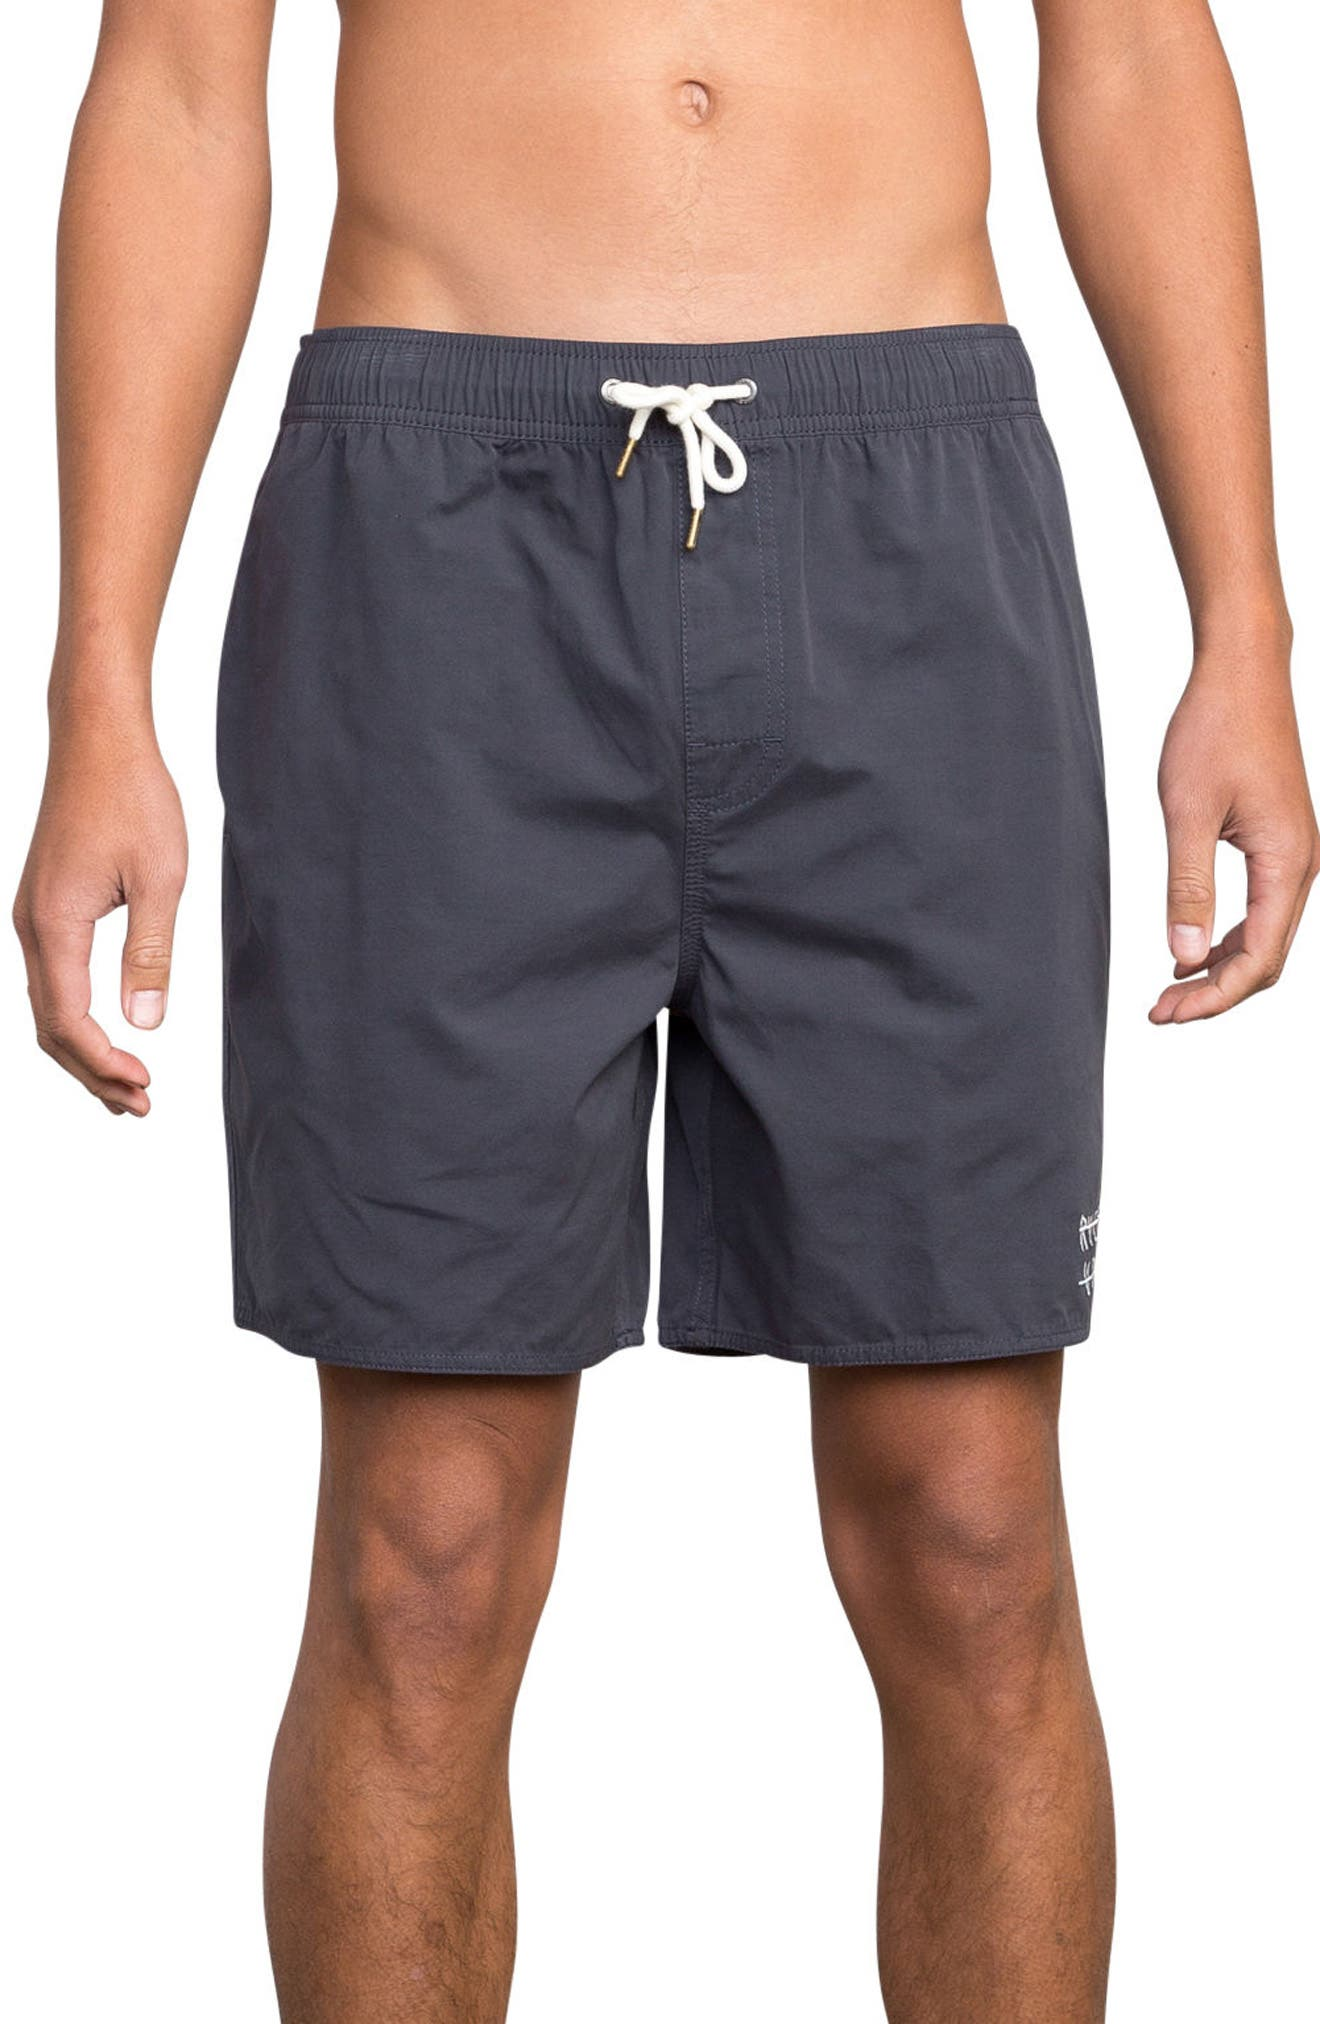 Horton Swim Trunks,                             Main thumbnail 1, color,                             Slate